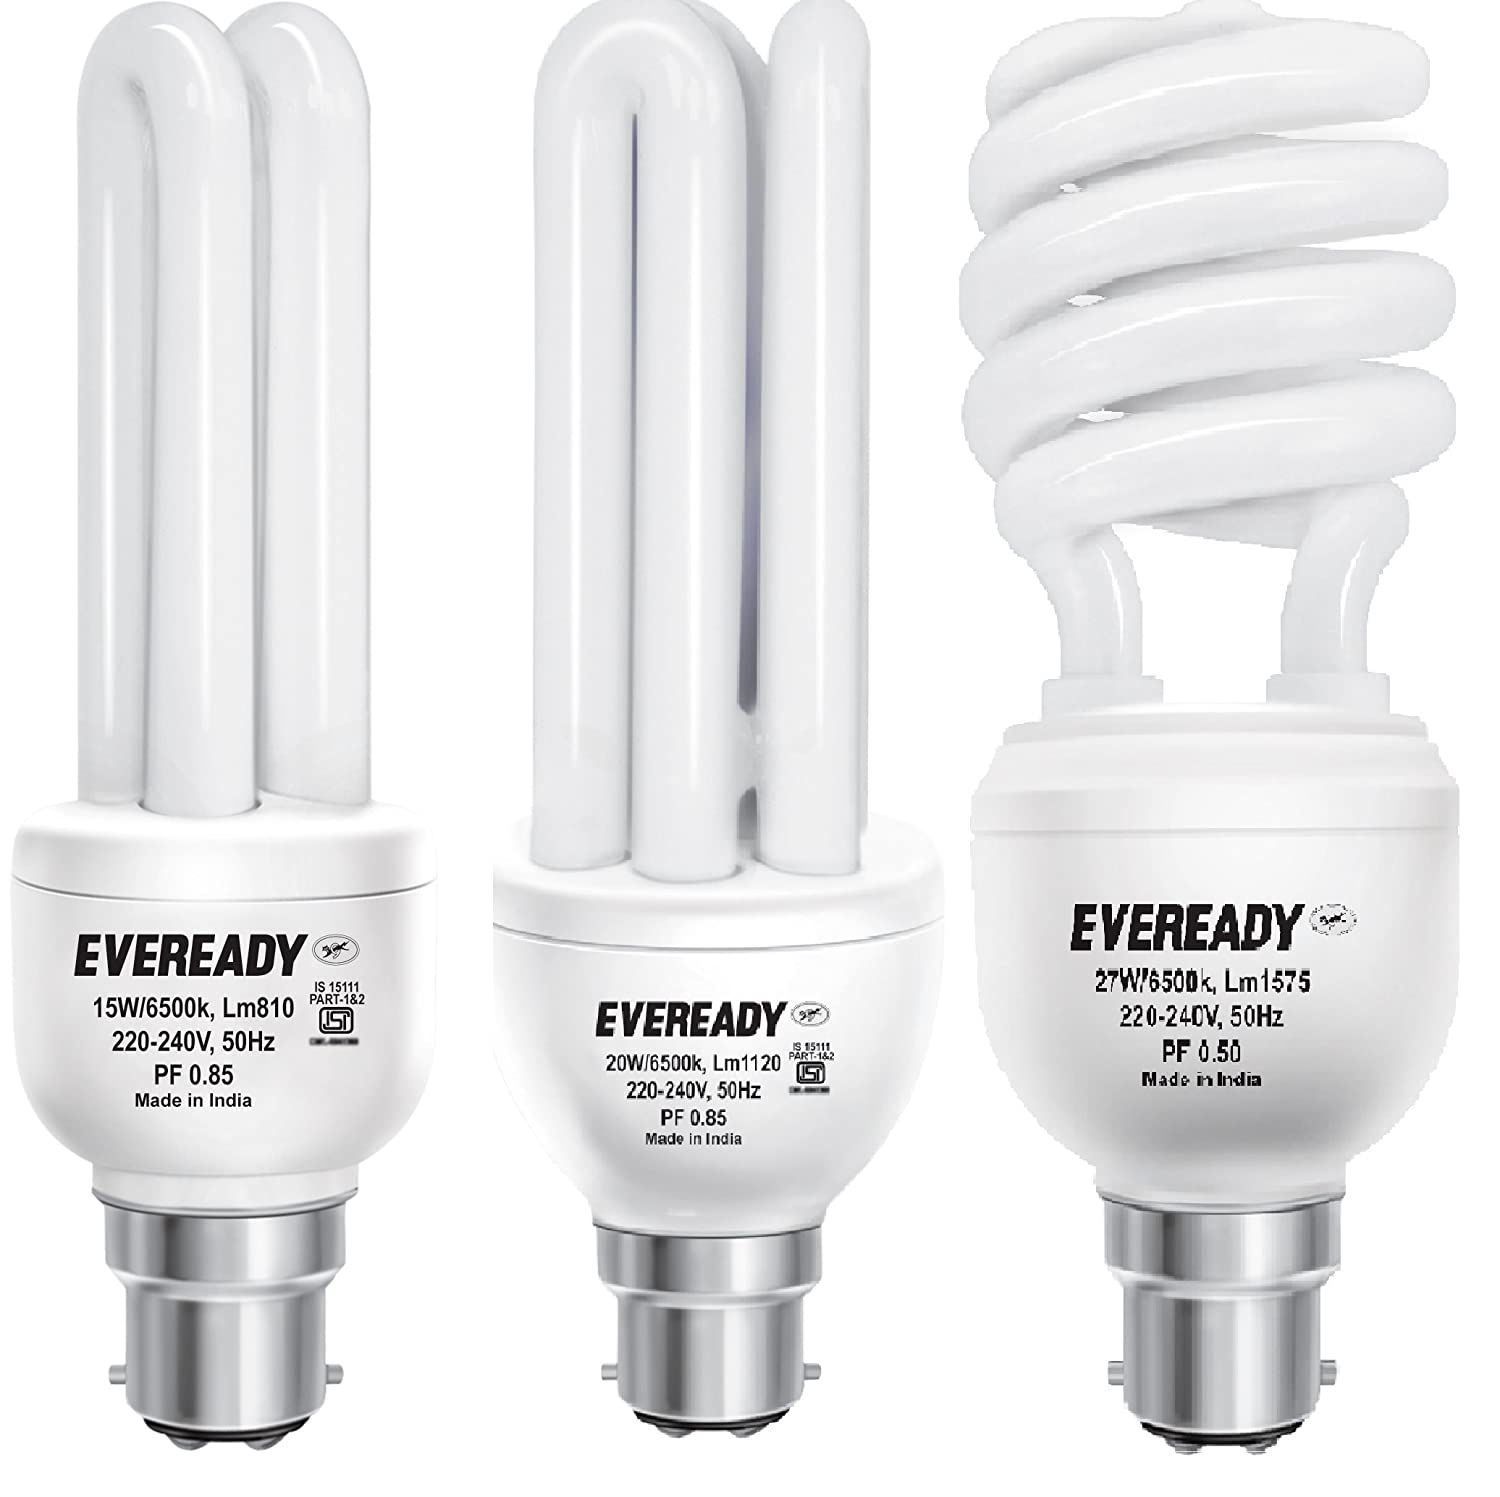 Cfl Bulbs Are We Locked In Frequency Control